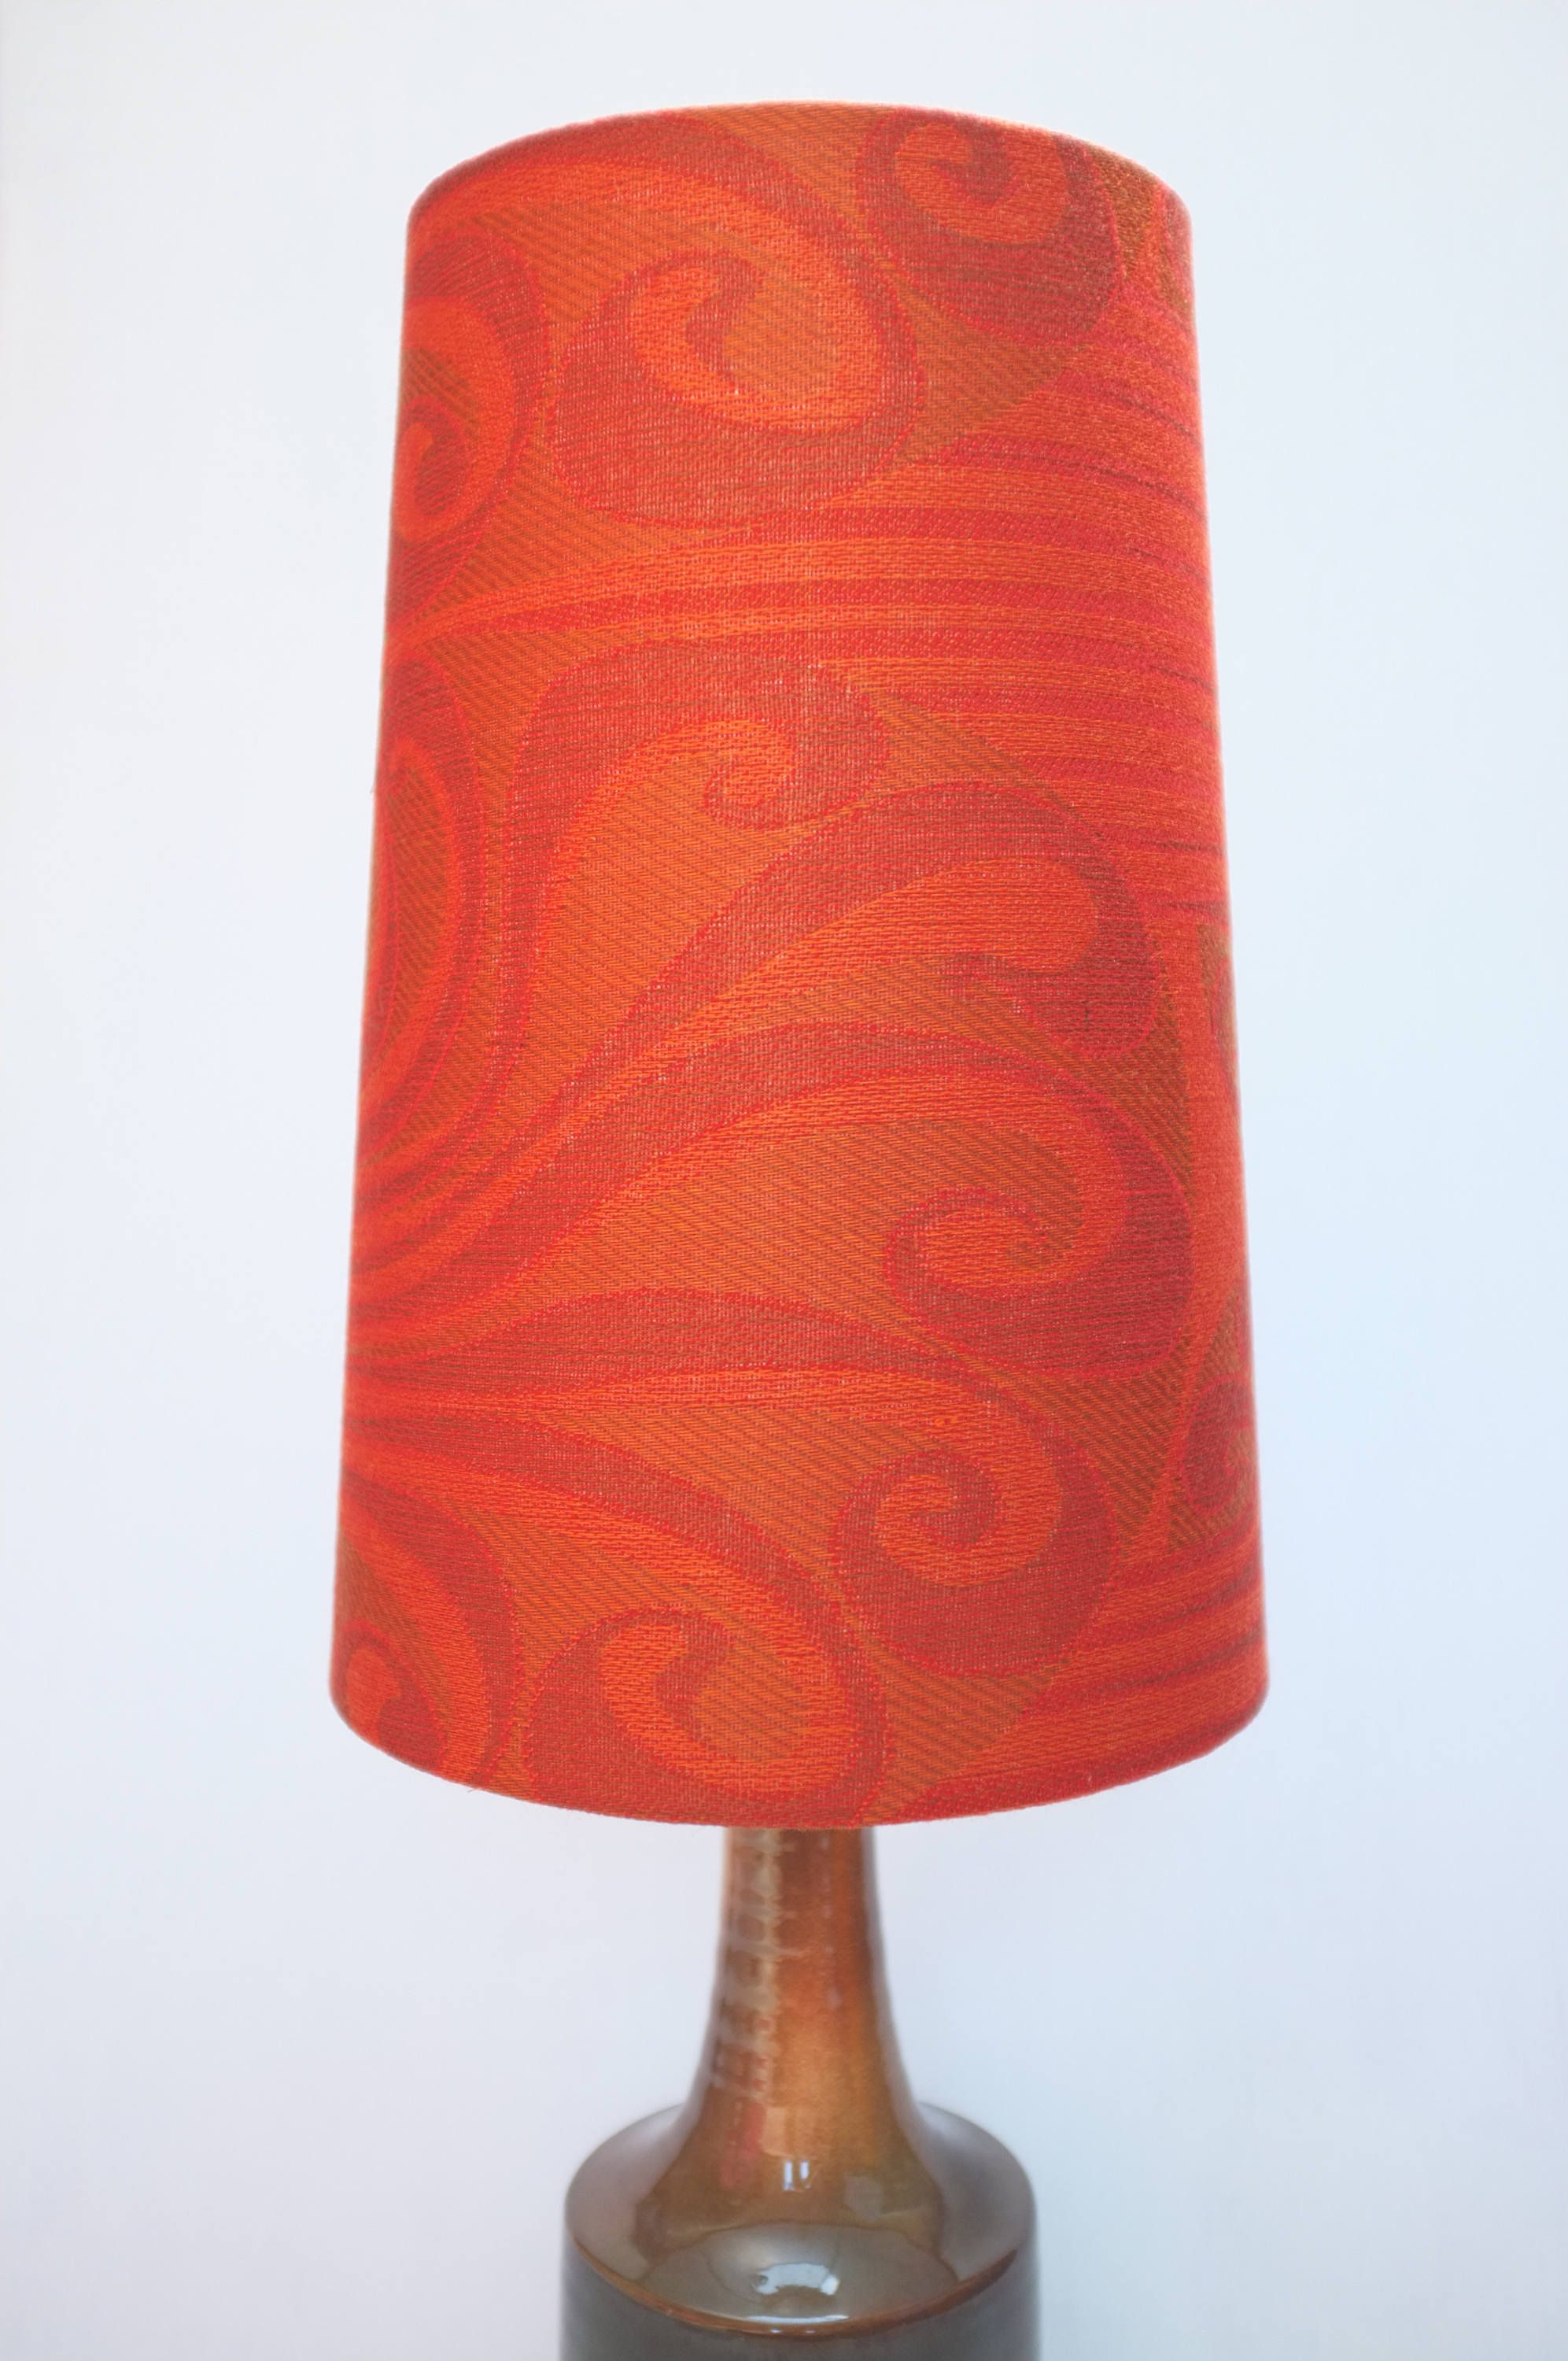 Retro Lampshade Original Fabric Extra Tall Conical 60s 70s Orange Red Vintage By Poppetretro On Etsy